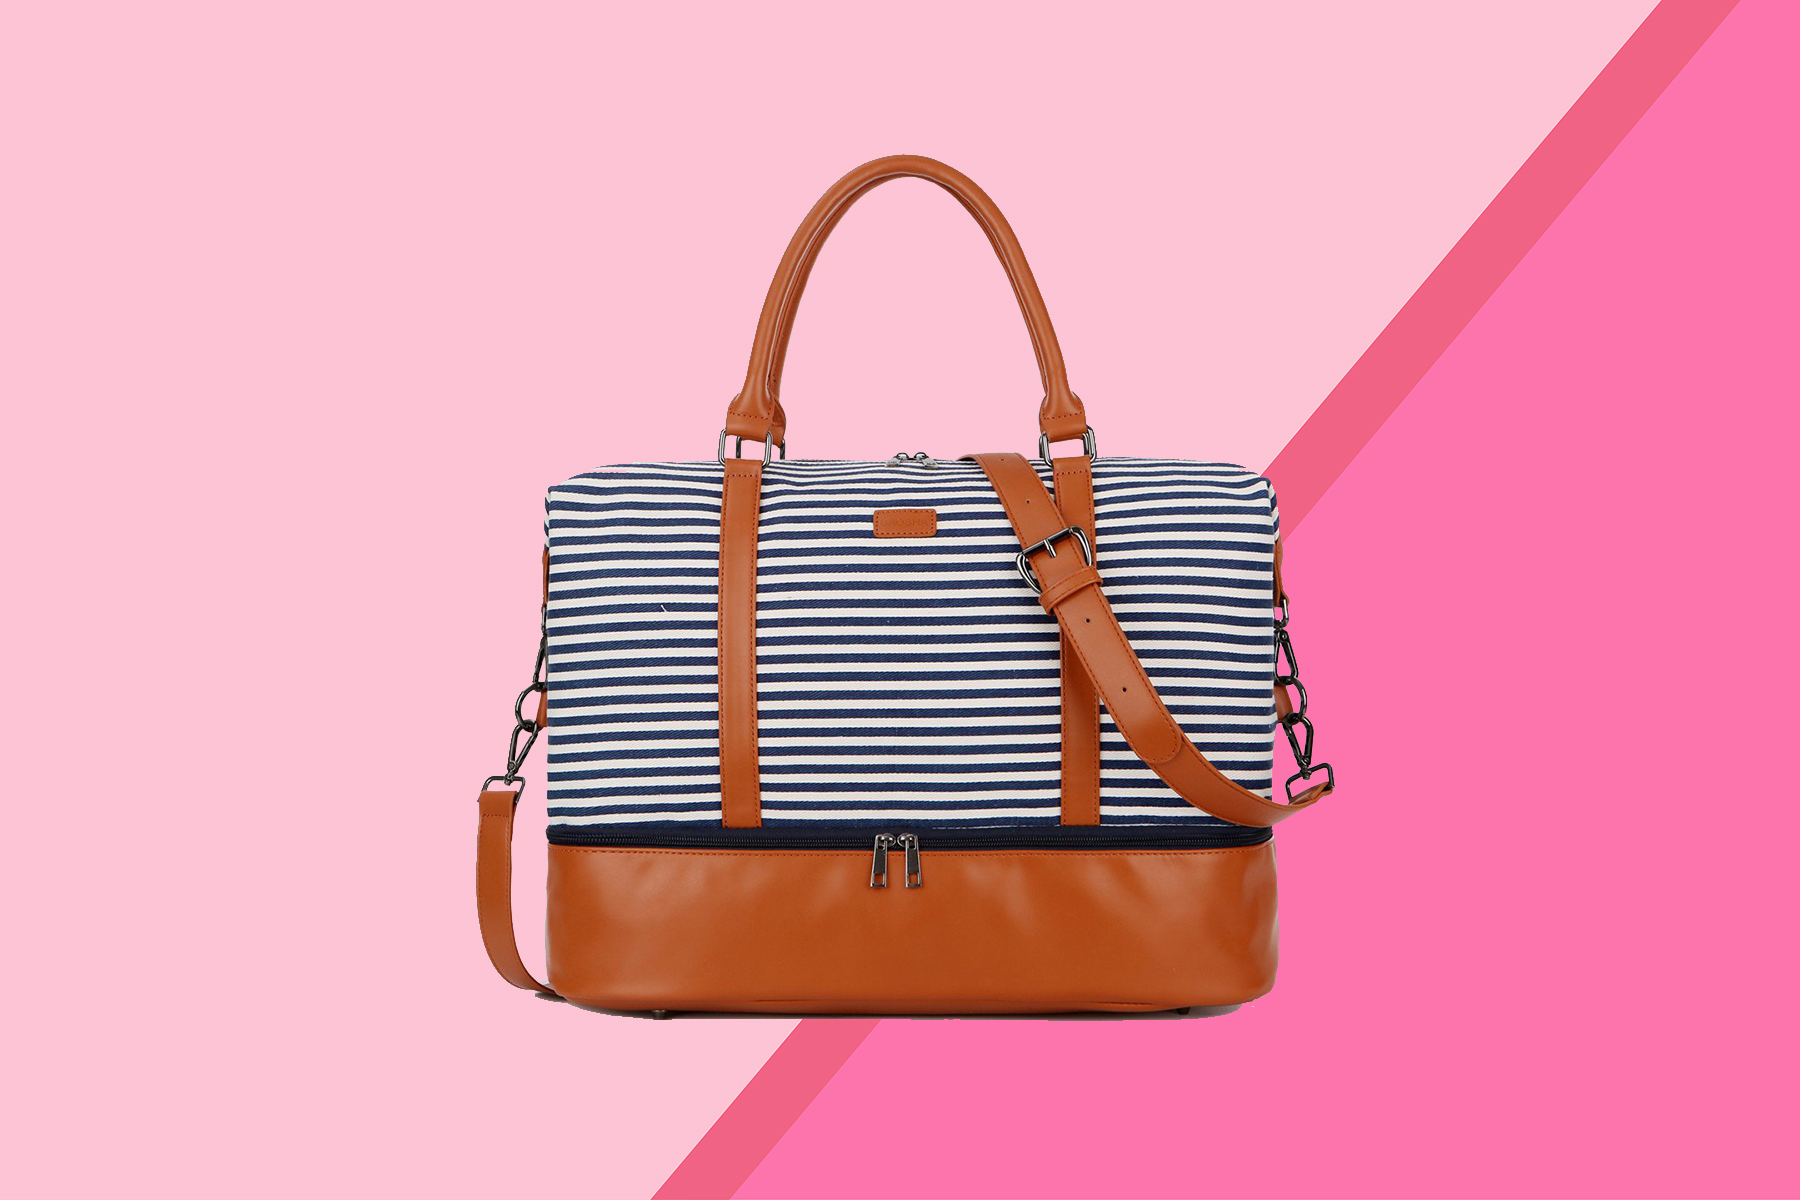 8df26c9eb14d 8 Stylish Weekender Bags That Are Perfect for Quick Getaways—All ...